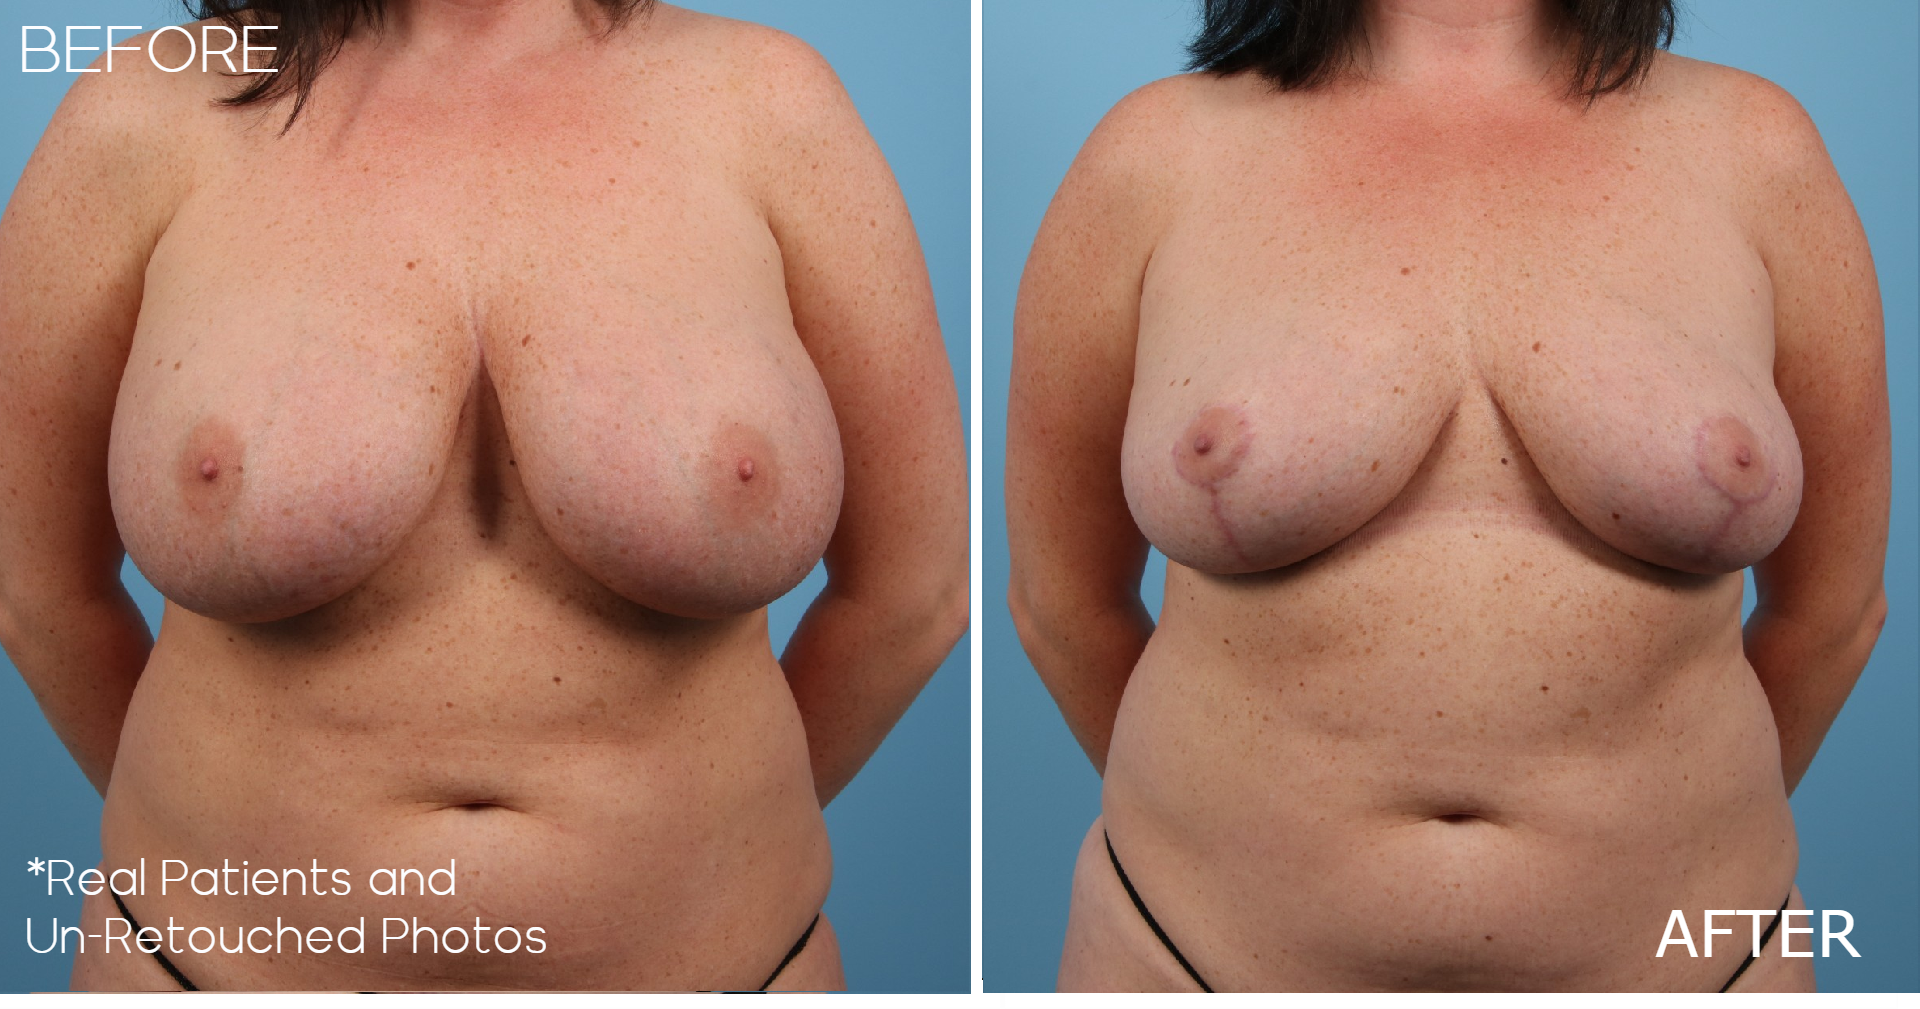 Case-987-Implant-Removal-Breast-Lift-Front-Before-and-After